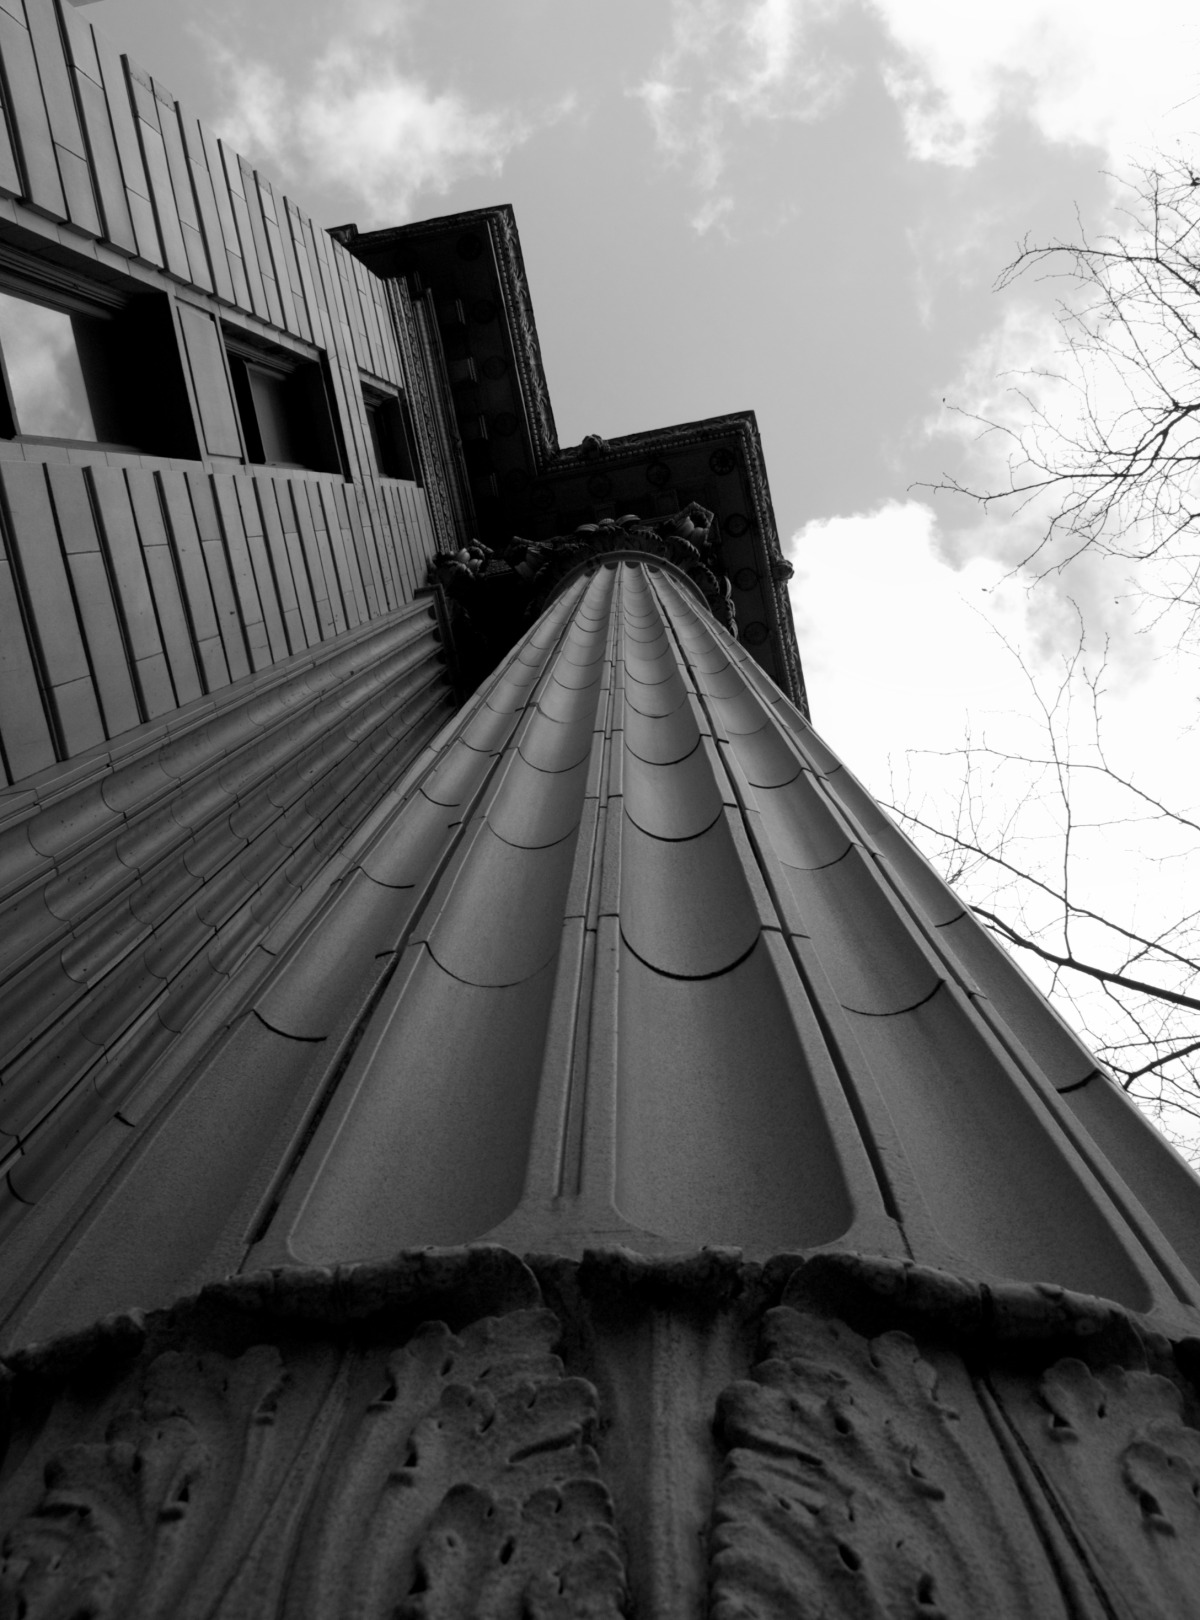 2010-03-10 at 11-25-45 architecture black  white sky height column stone weight oppression soaring bank.jpg